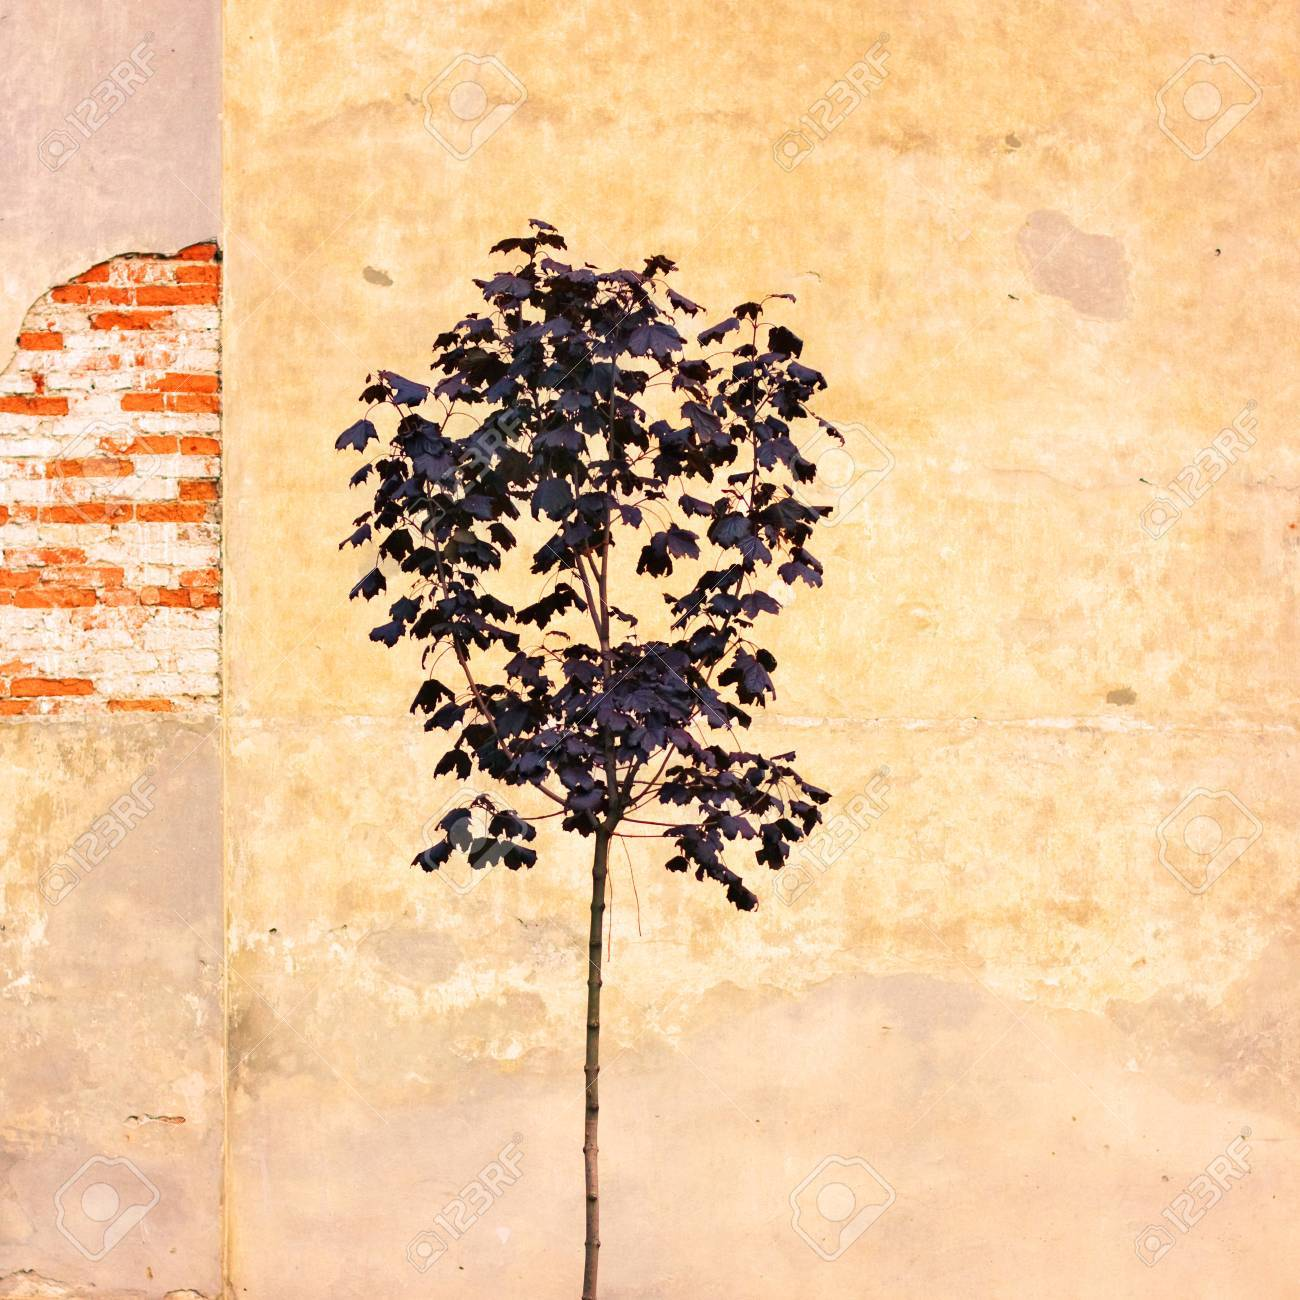 Lonely Tree In Aged Textured Art Background. Depression And ...